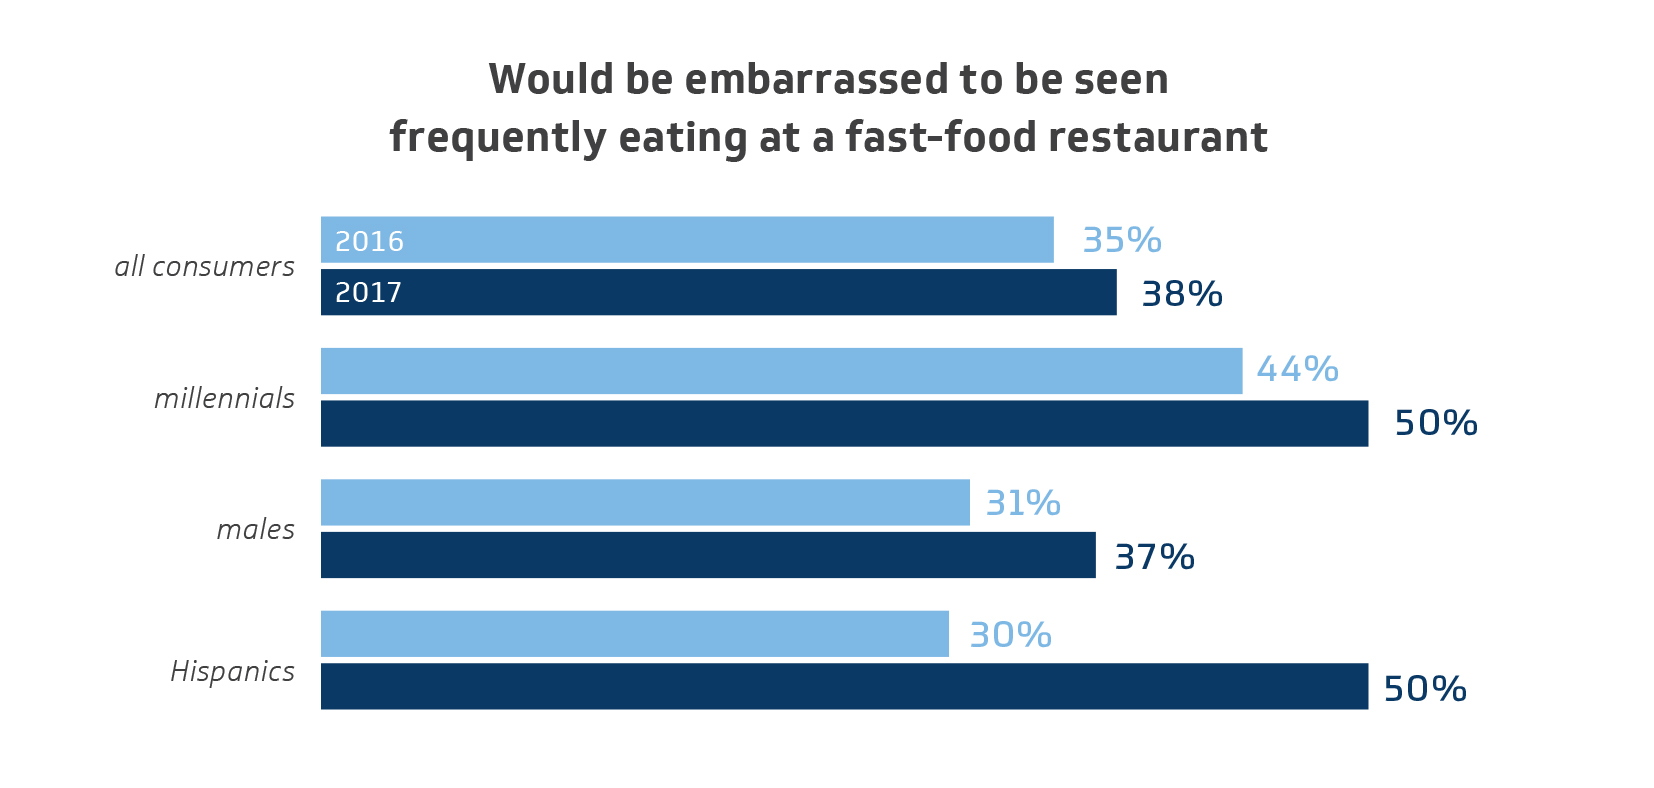 consumer attitudes to western fast food Income on fast food and the most favorite cuisine preferred by the respondents is western junk foods they also expressed that the discount offered at the fast food the consumers did not voice any intention of eating out more frequently an attitude towards eating out was not all so positive, with certain levels of suspicion or.